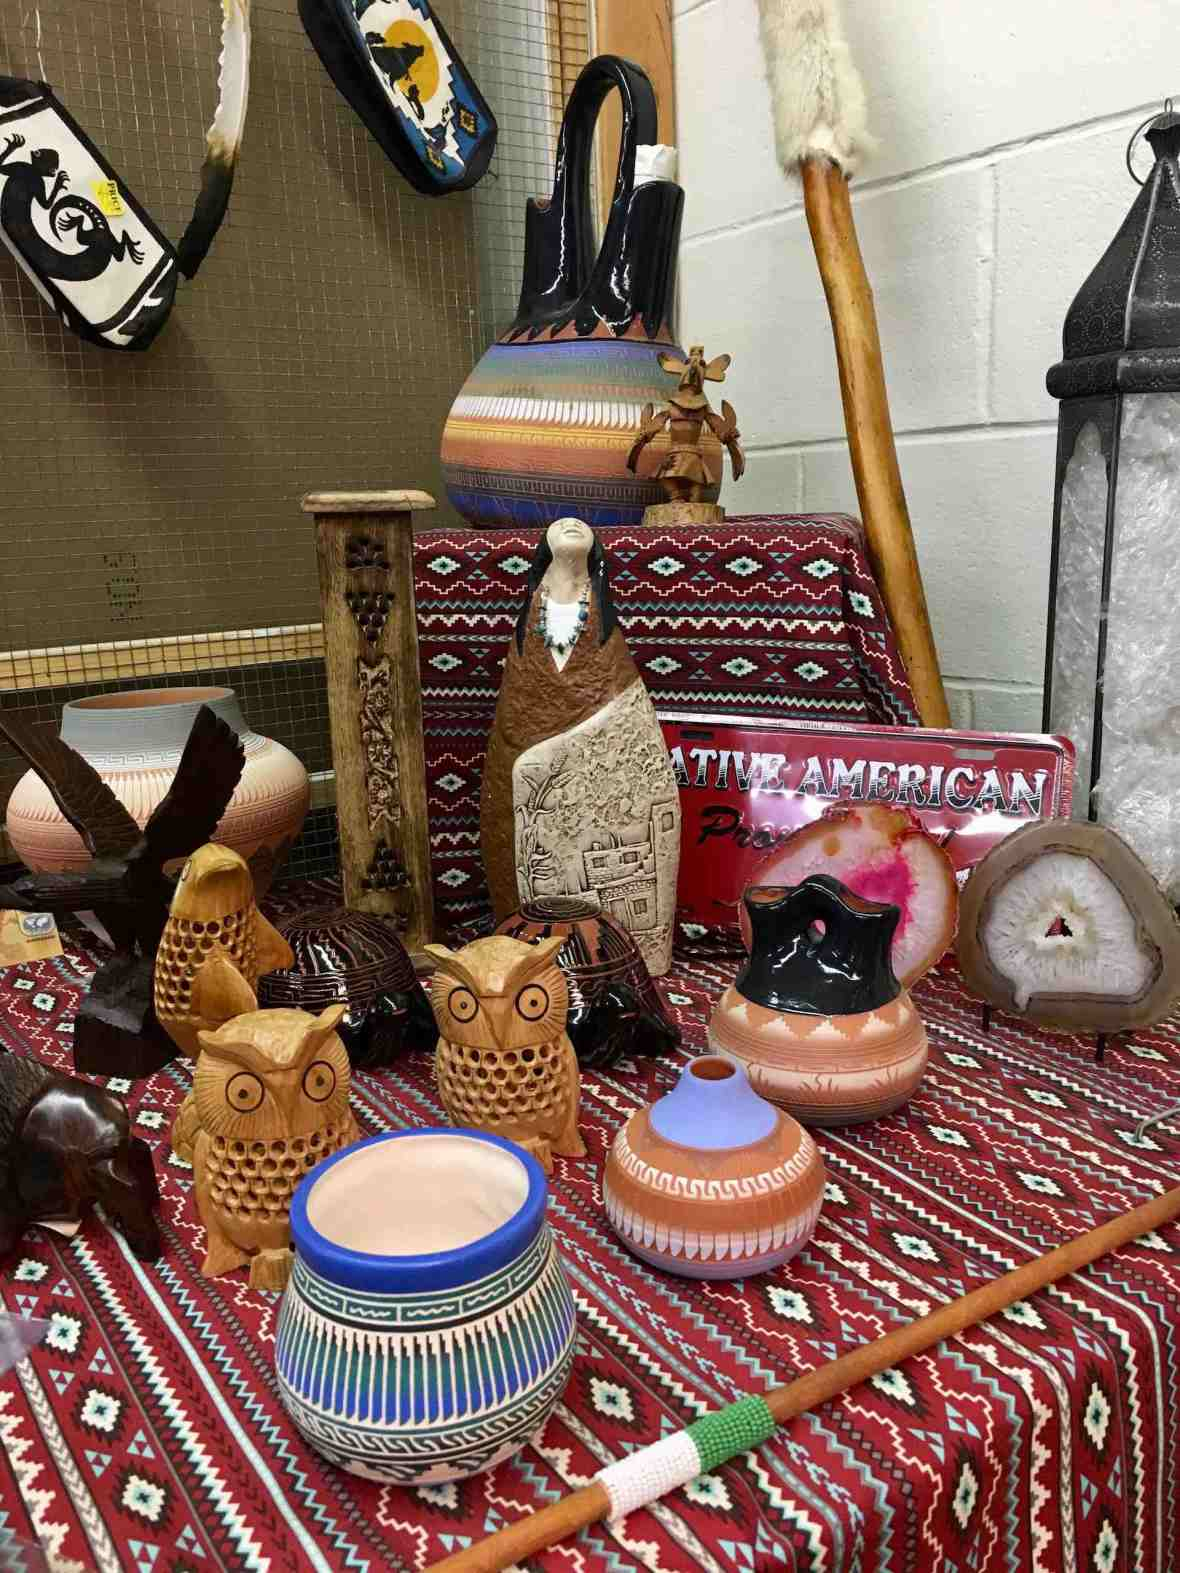 Navajo pots at Treasures Antique Mall in Cookeville, Tennessee